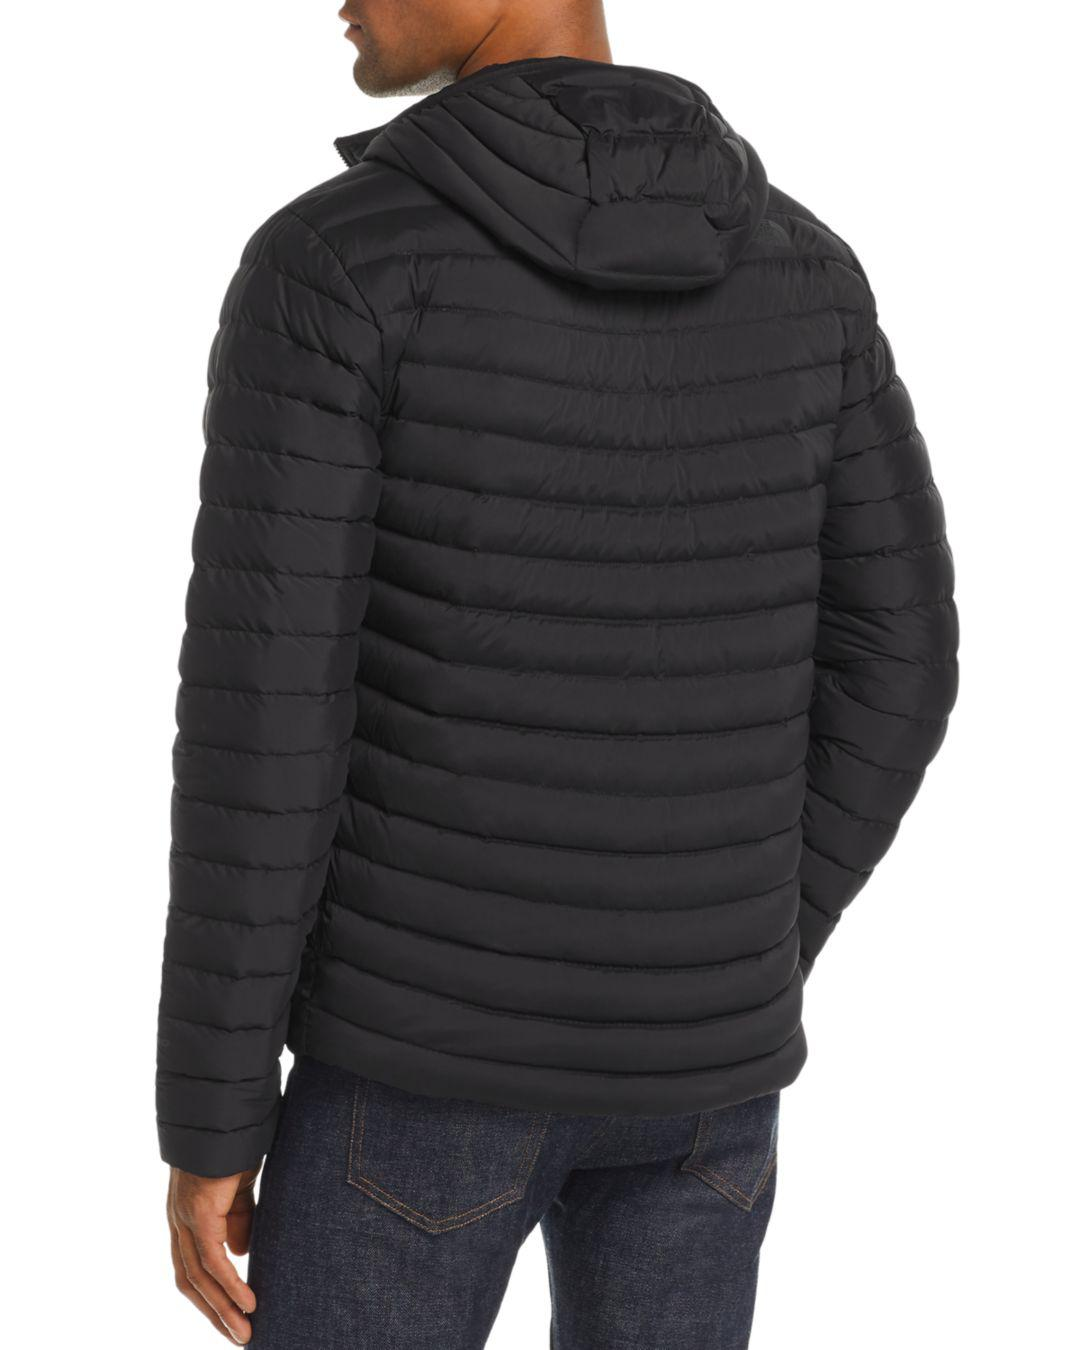 b628f8a08 new style mens north face down jacket with fur hood 58afc f9206